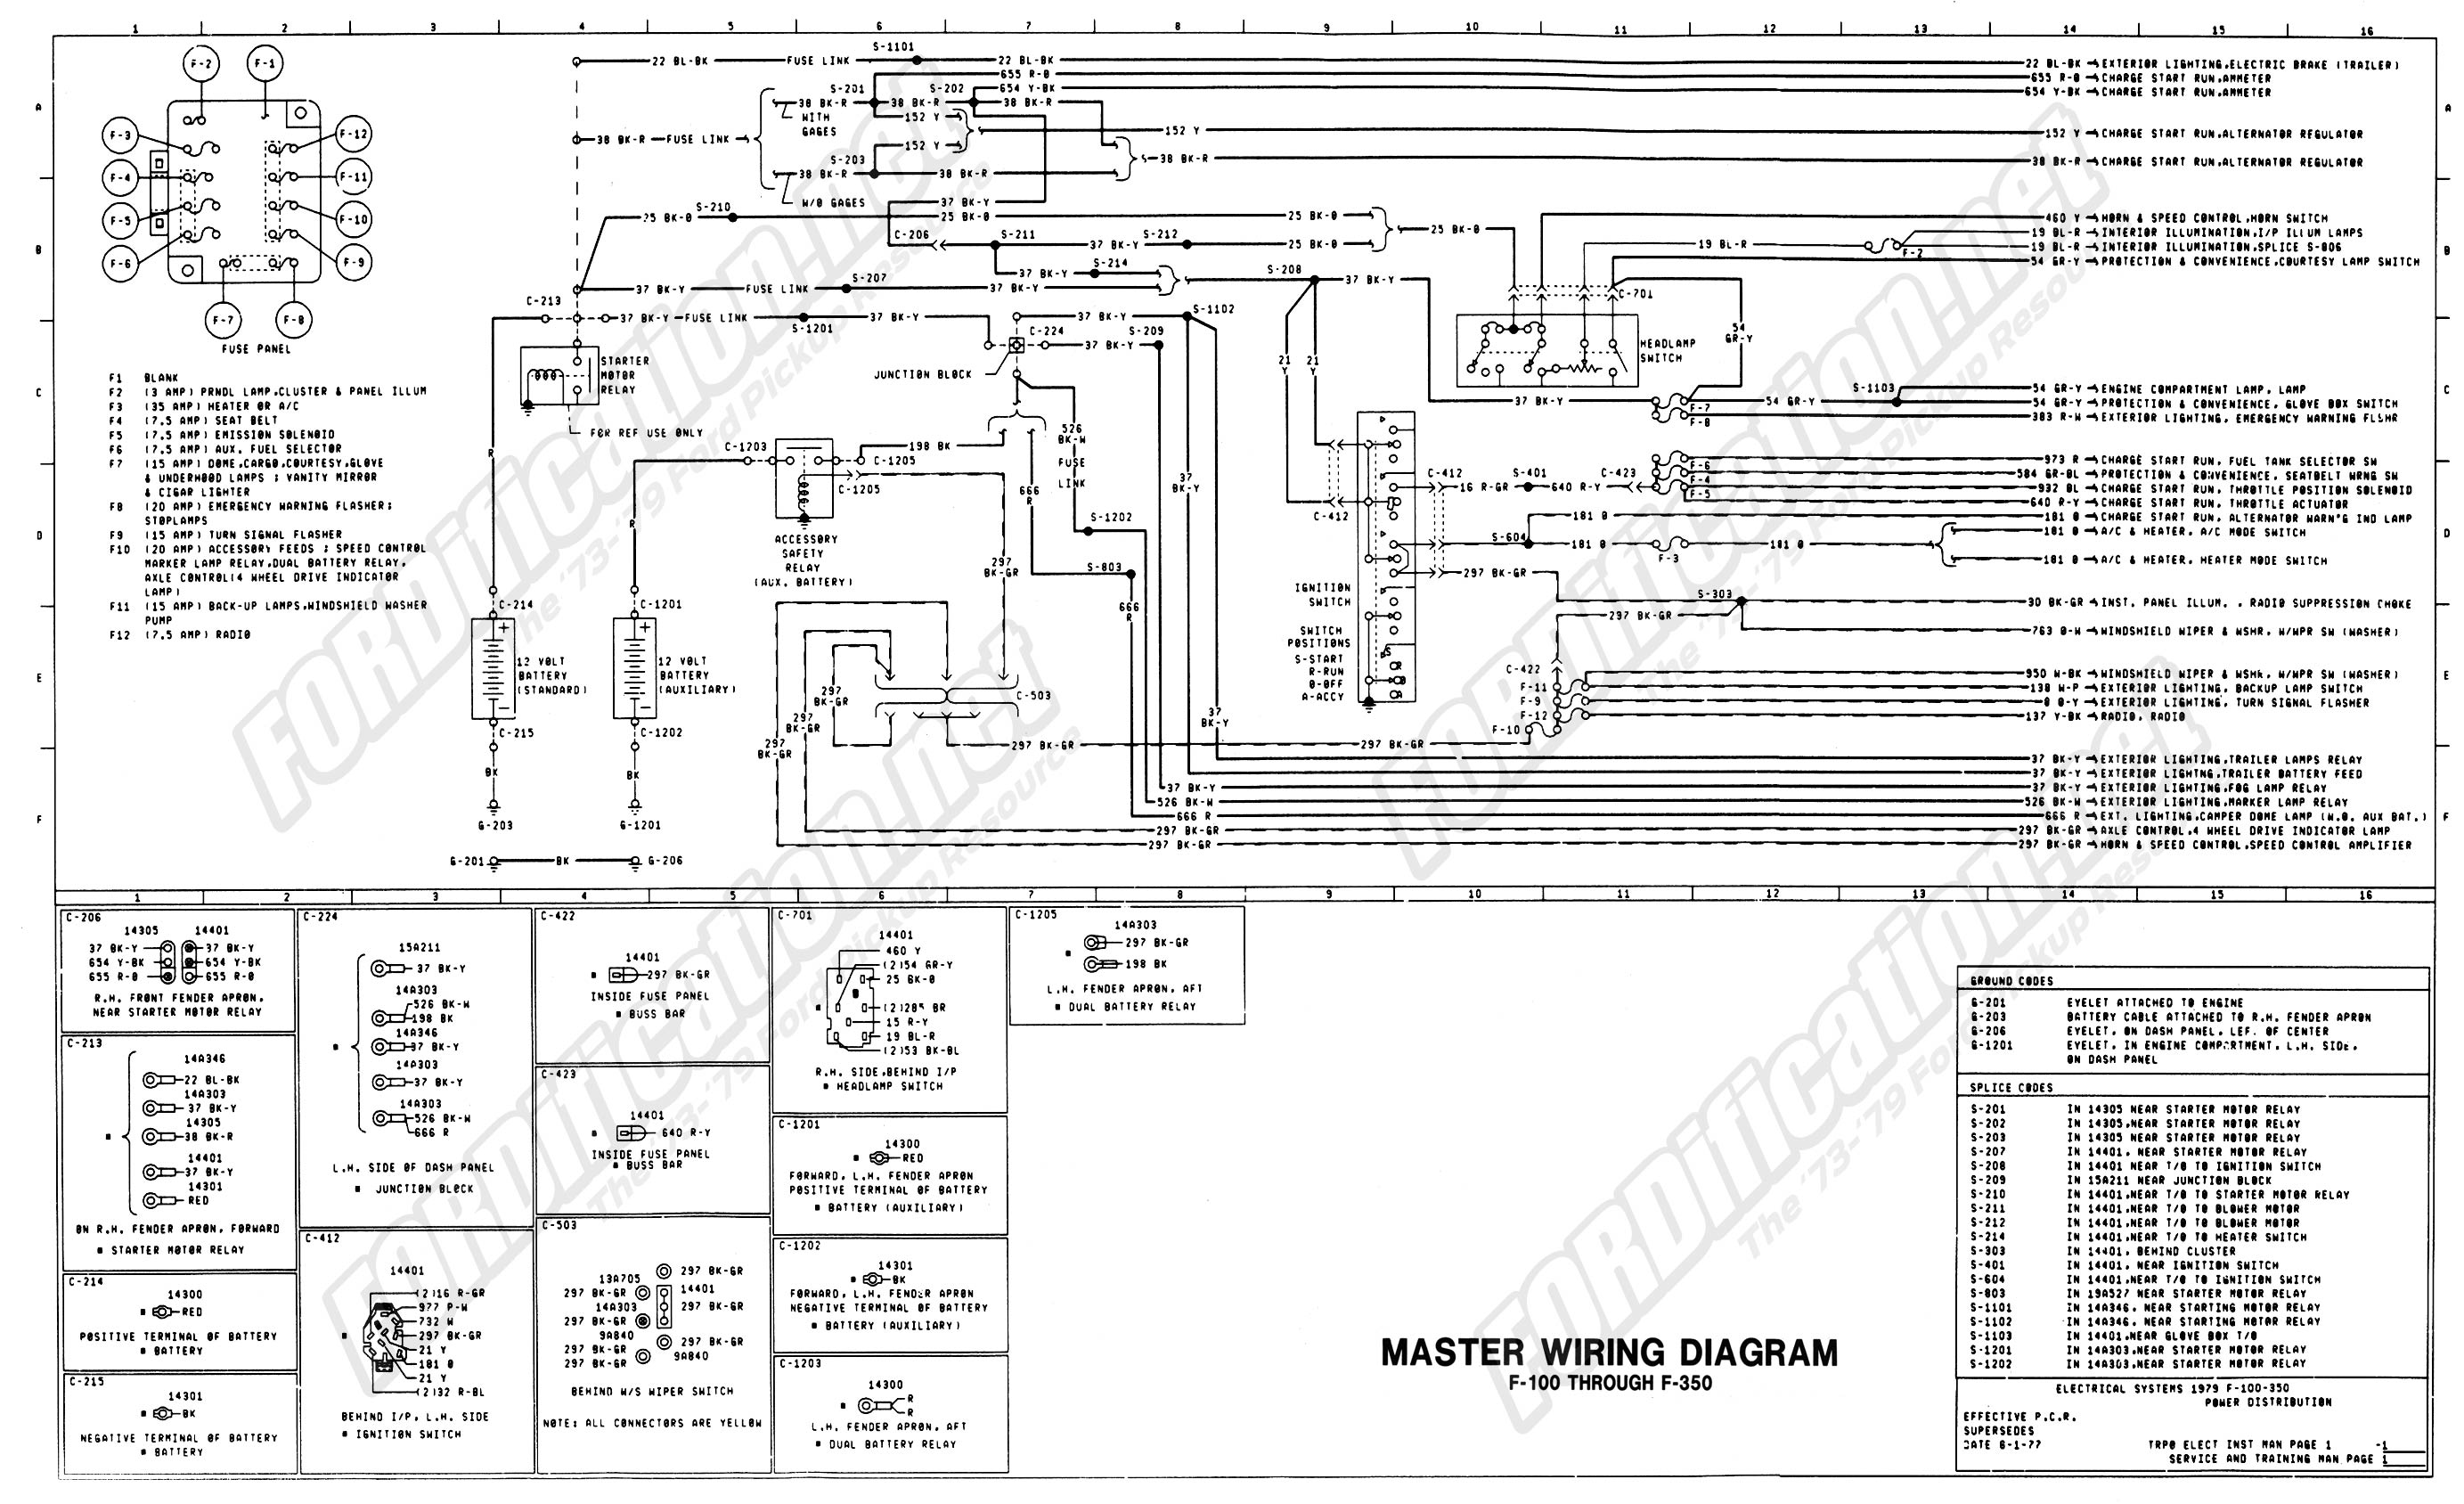 1973-1979 ford truck wiring diagrams & schematics ... 1976 mg midget wiring diagram usa 1976 f250 distributor wiring diagram